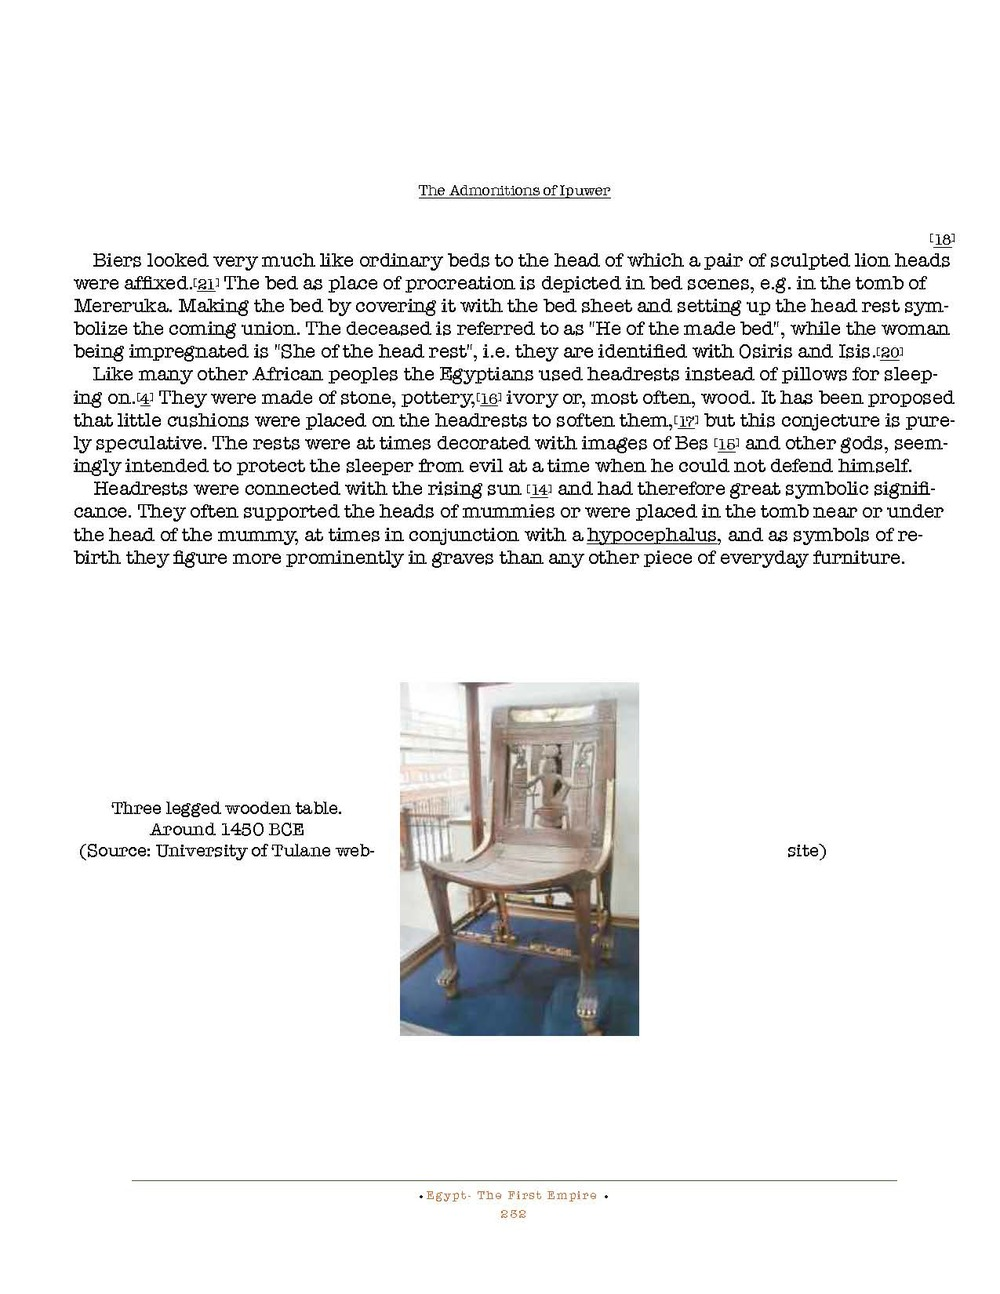 HOCE- Egypt  (First Empire) Notes_Page_232.jpg